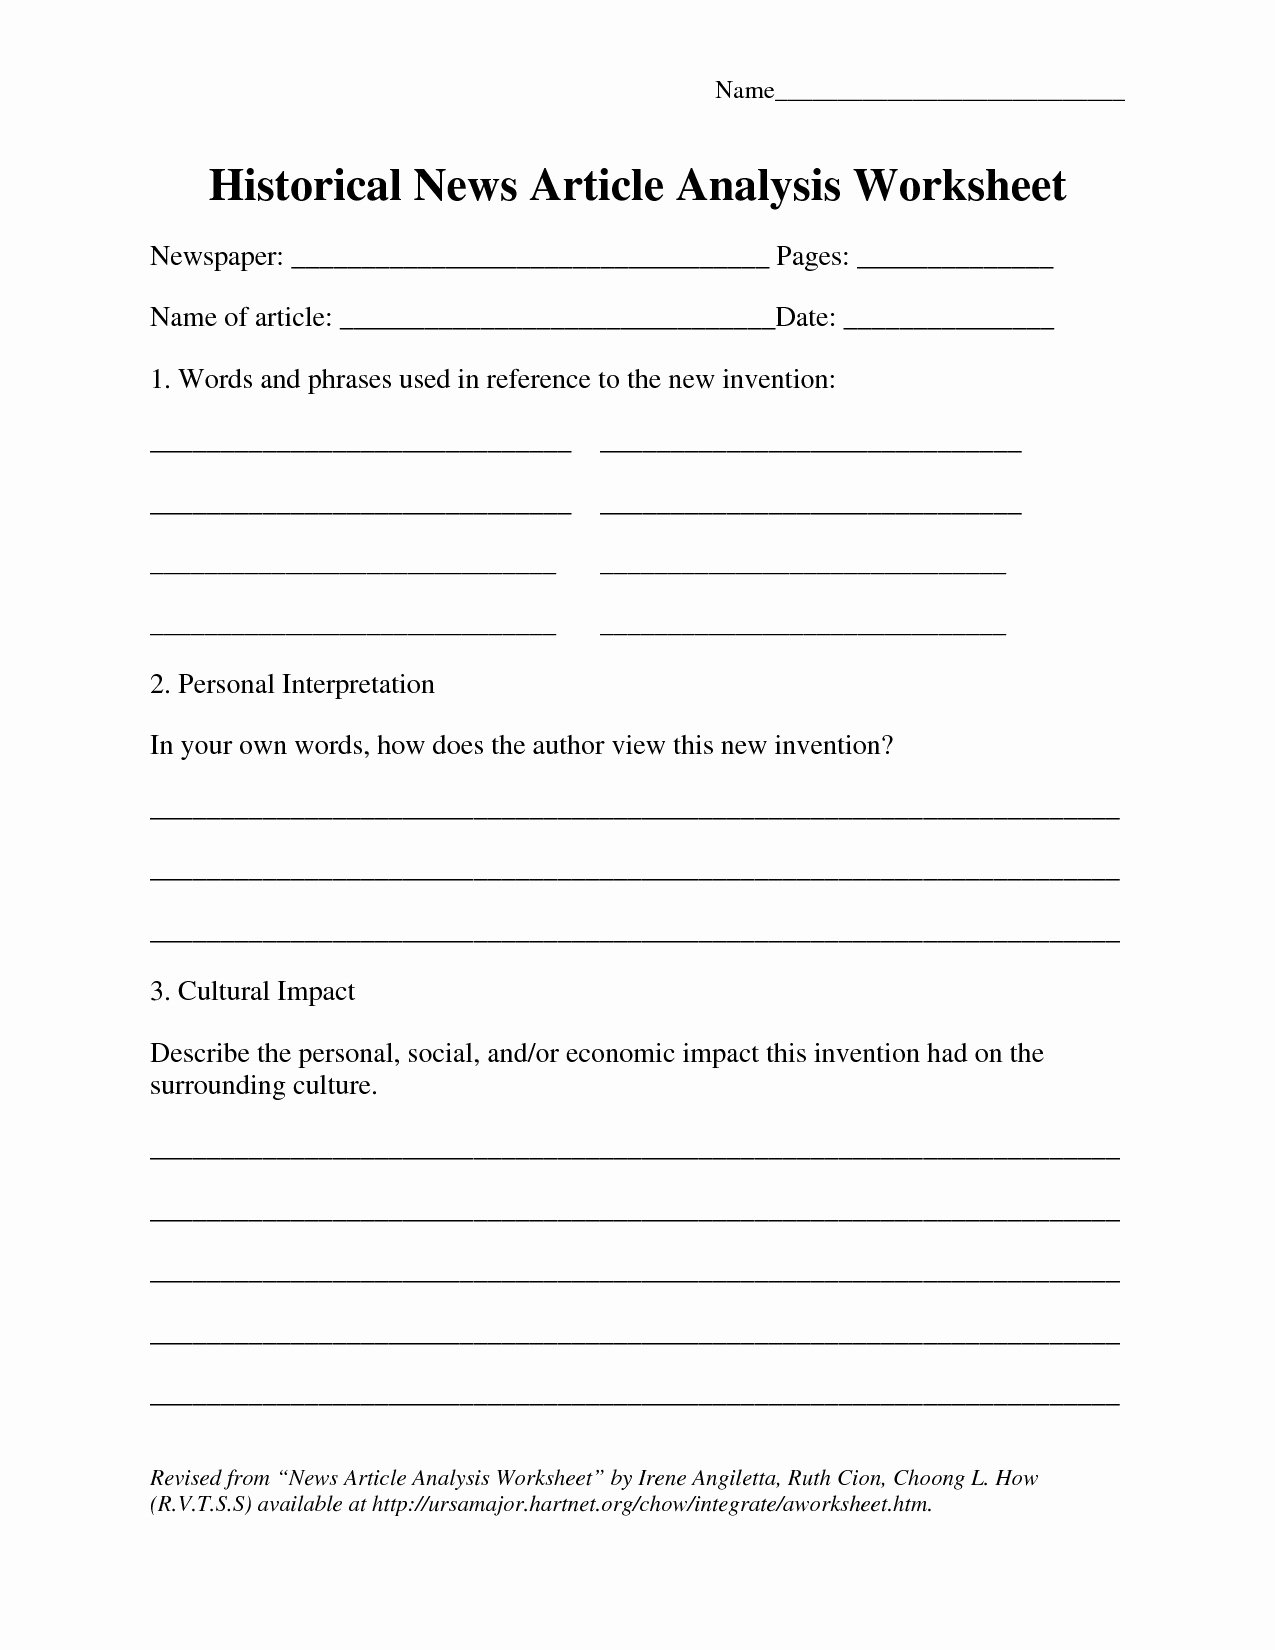 Current events Worksheet Middle School Best Of Current events Paper Worksheet